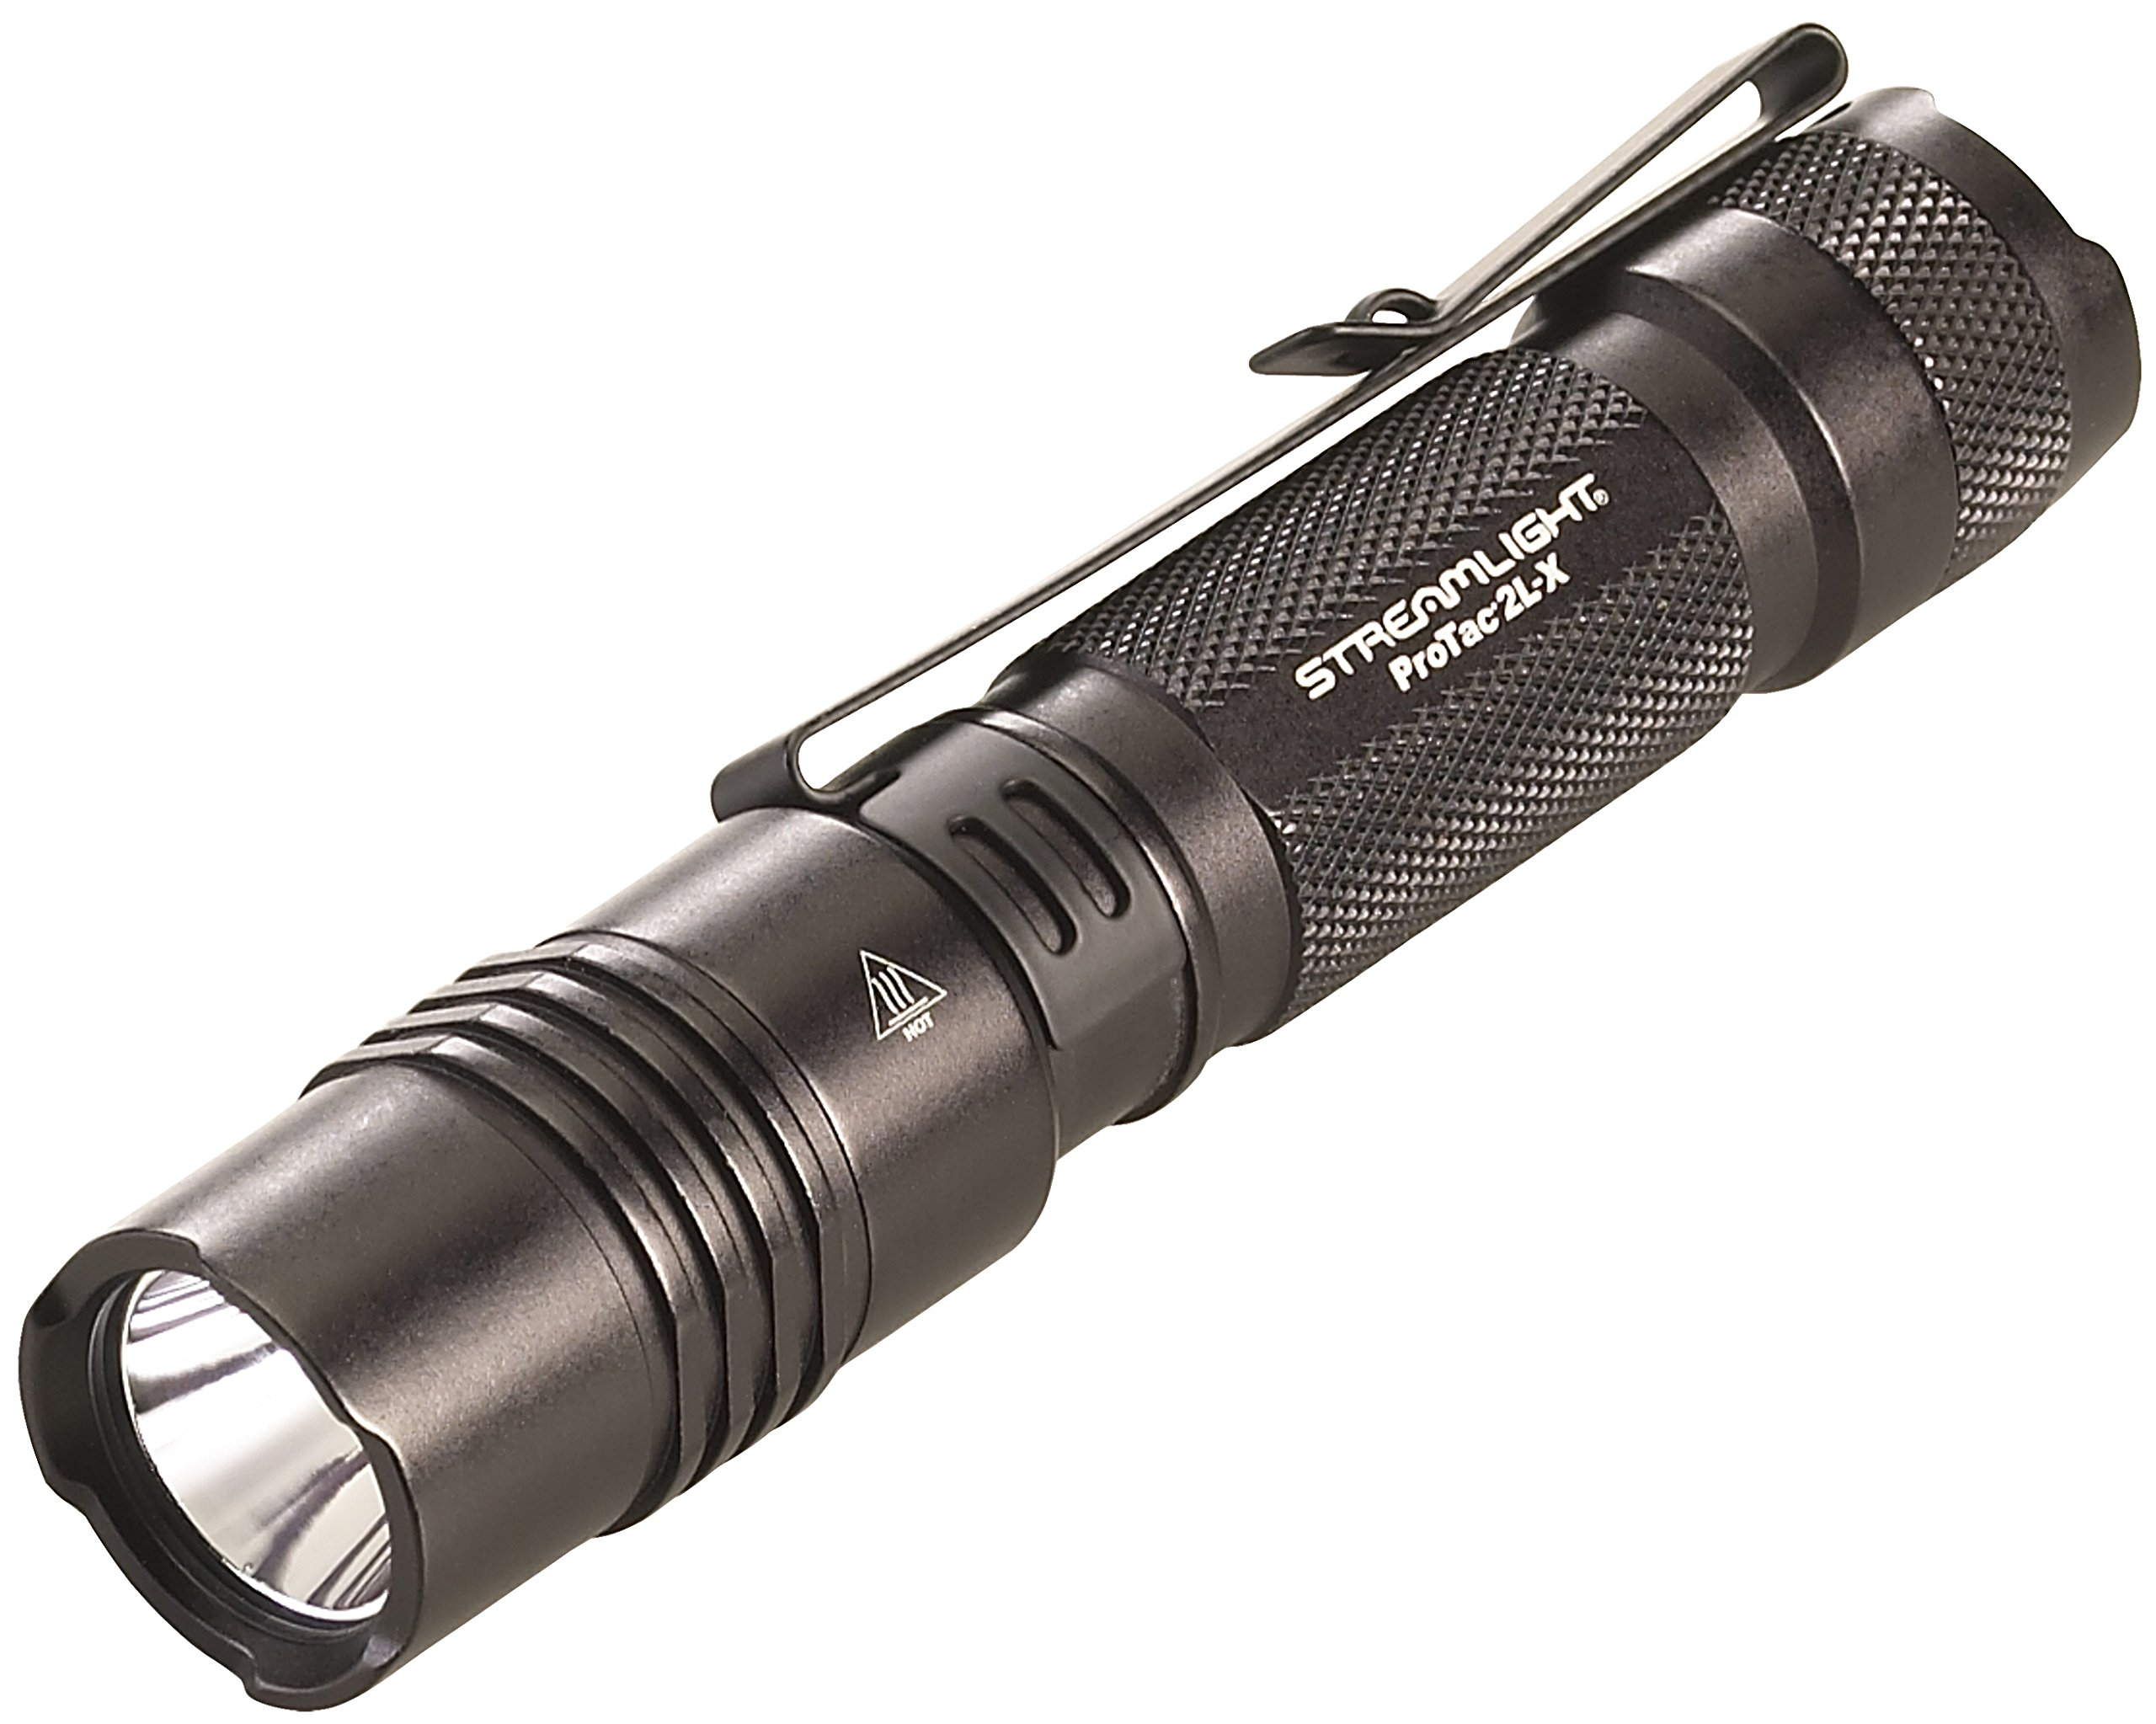 Streamlight 88062 ProTac 2L-X 500 lm Professional Tactical Flashlight, Black - 500 Lumens by Streamlight (Image #2)